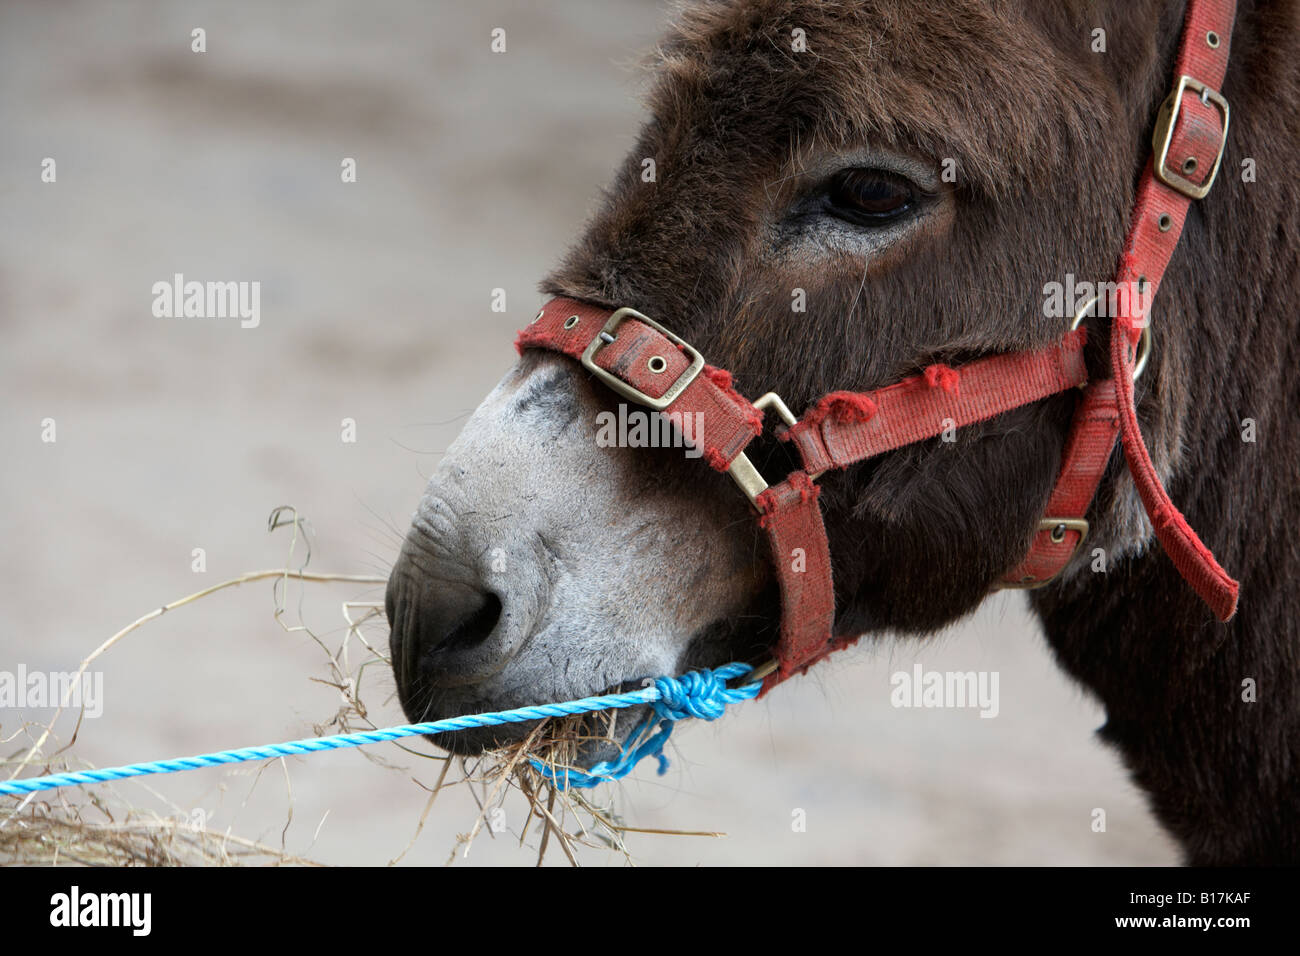 head and face of a donkey with bridle tied with blue rope eating straw at the ballyclare may fair - Stock Image